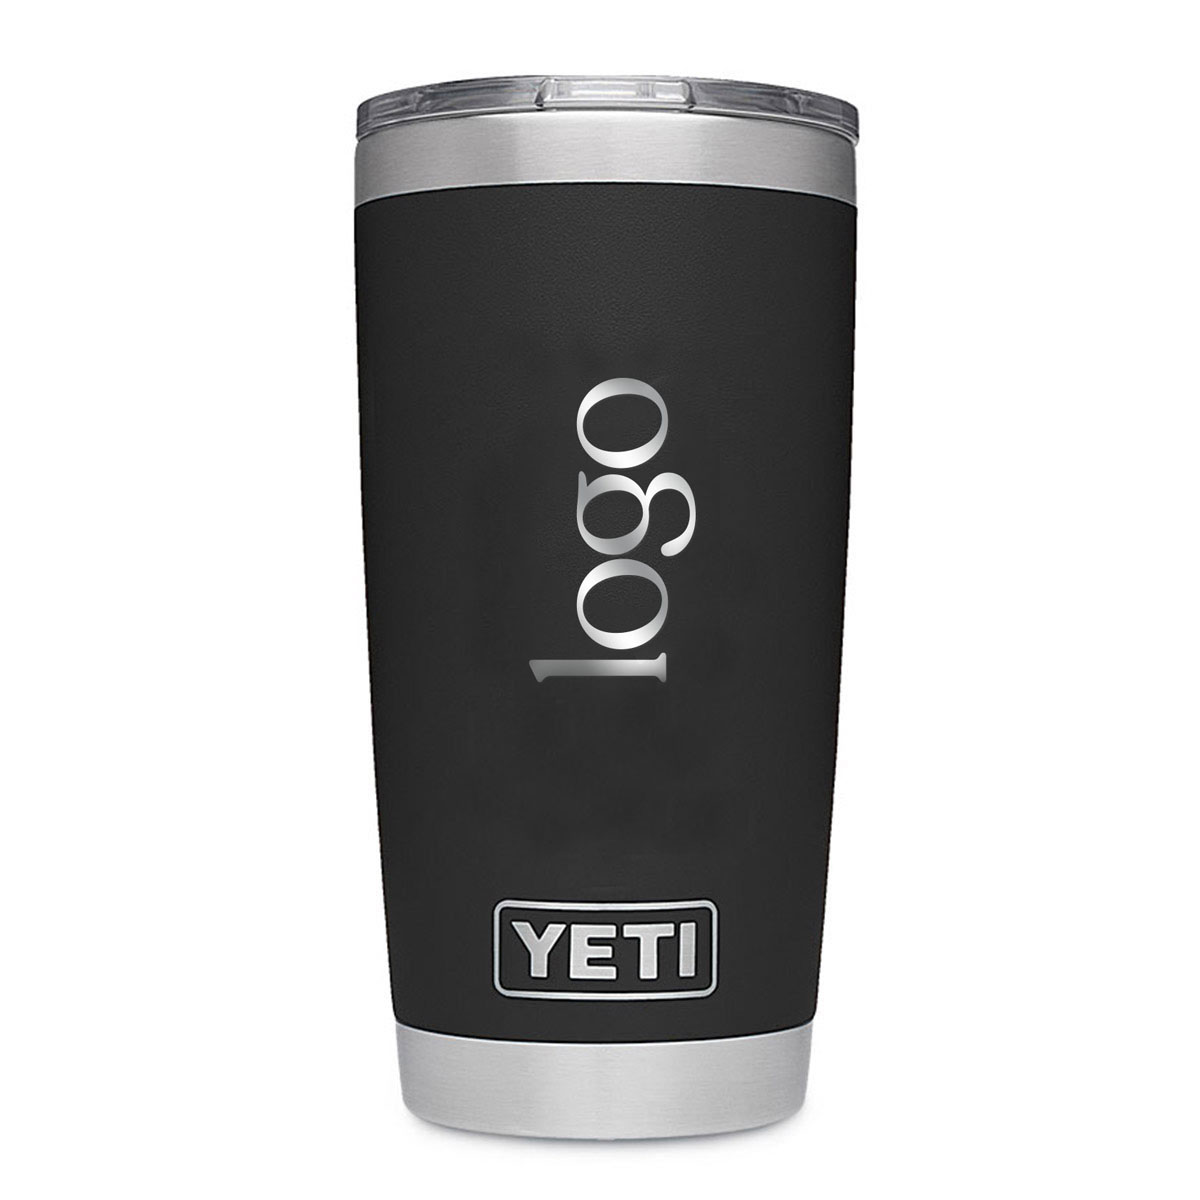 243701 20oz tumbler bottle laser engraved one location